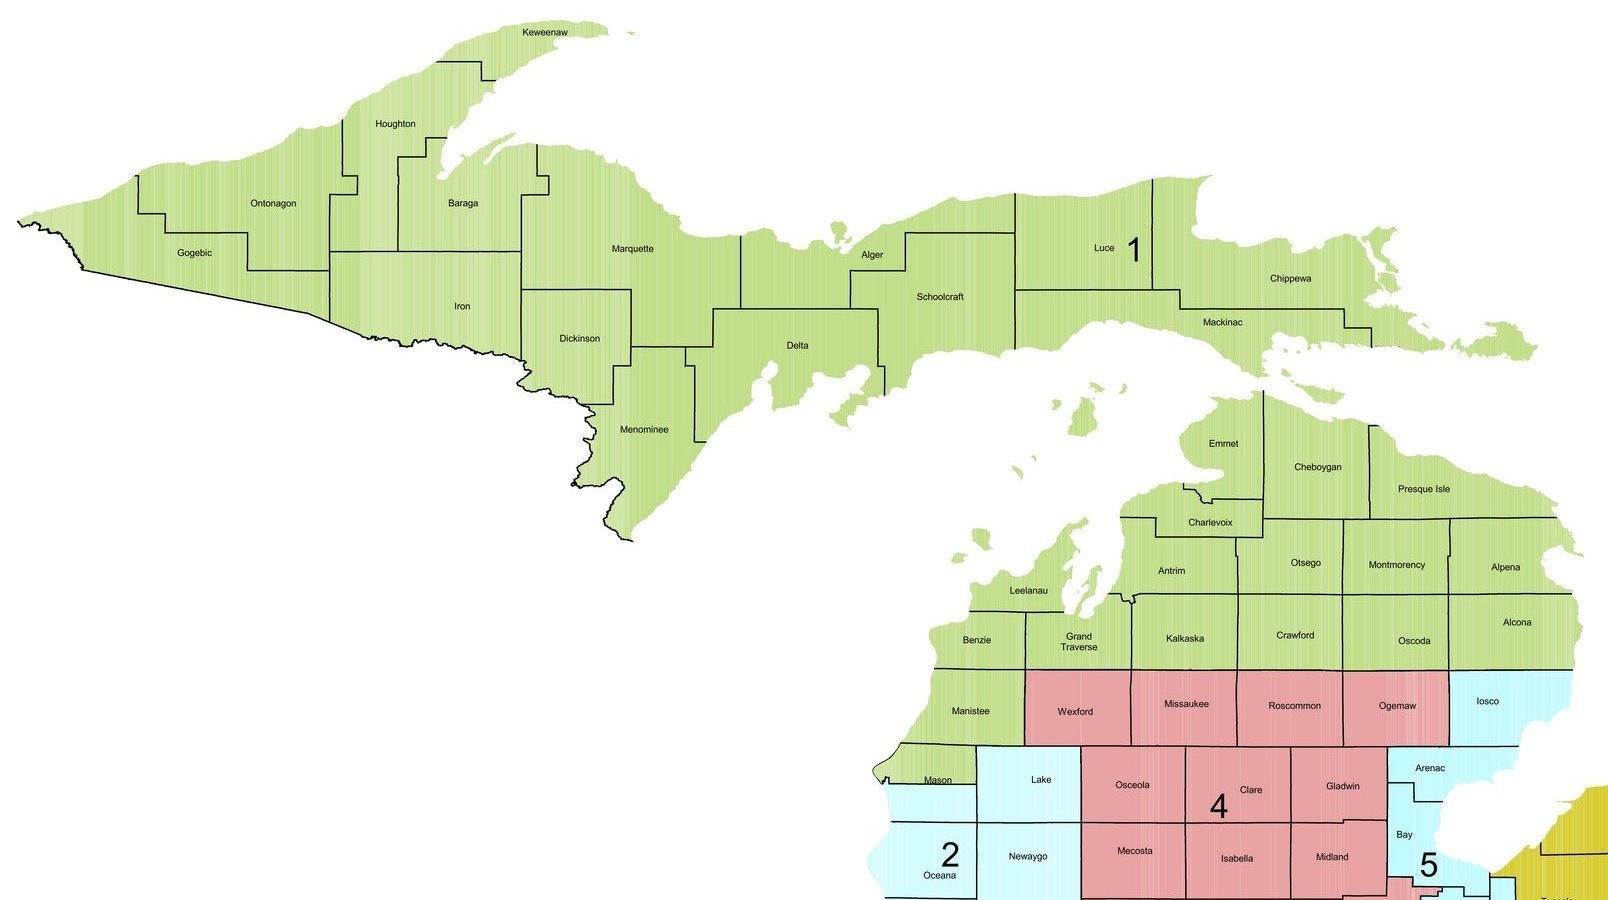 Bergman For Congress - Us house of representatives district map michigan